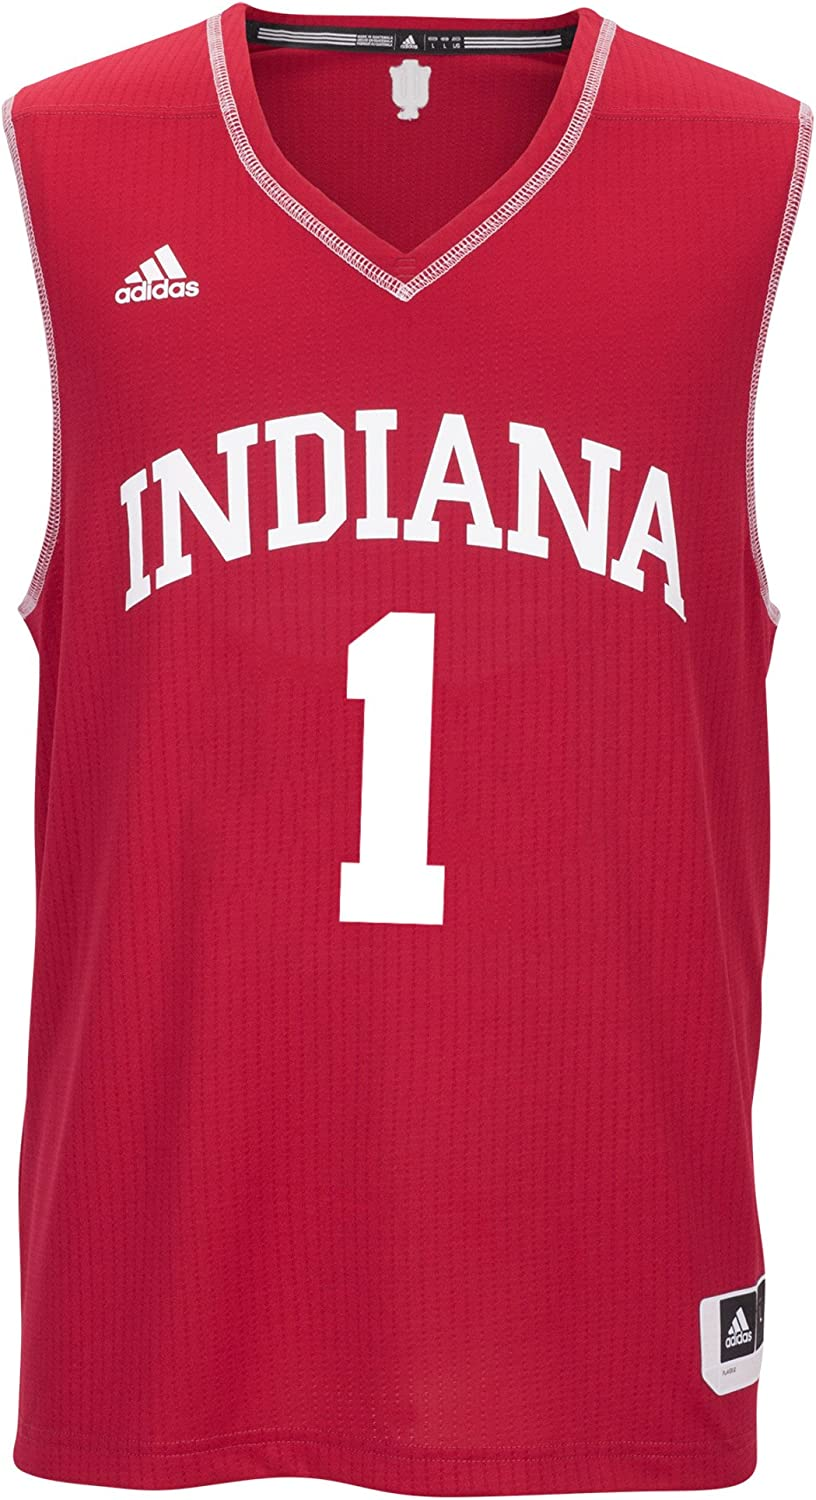 Red NCAA Indiana Hoosiers Mens Replica Jersey 4X-Large